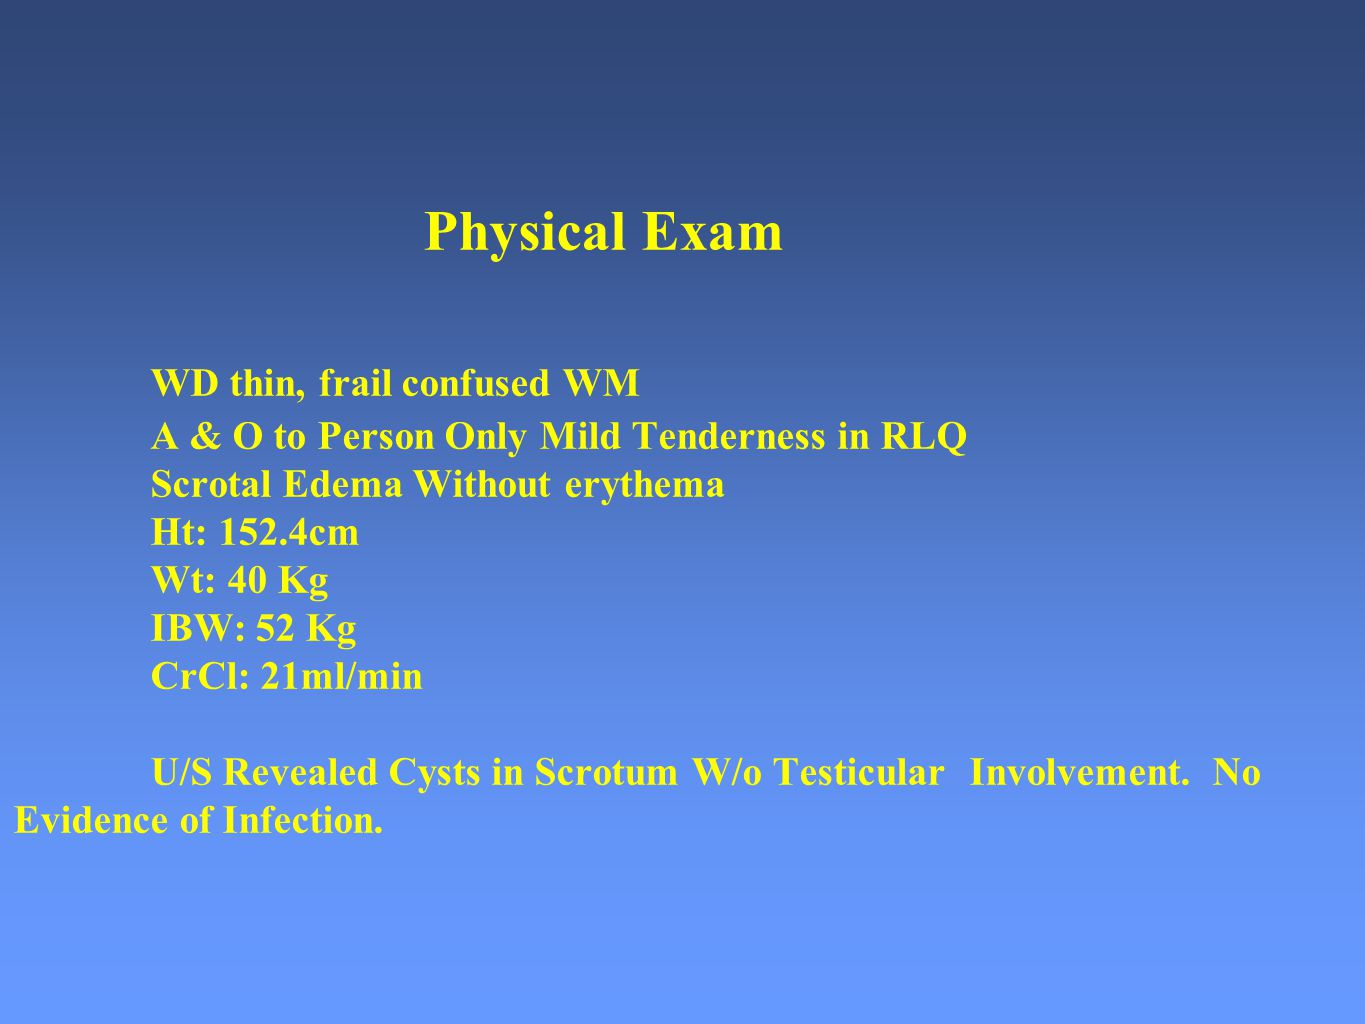 Physical Exam. WD thin, frail confused WM